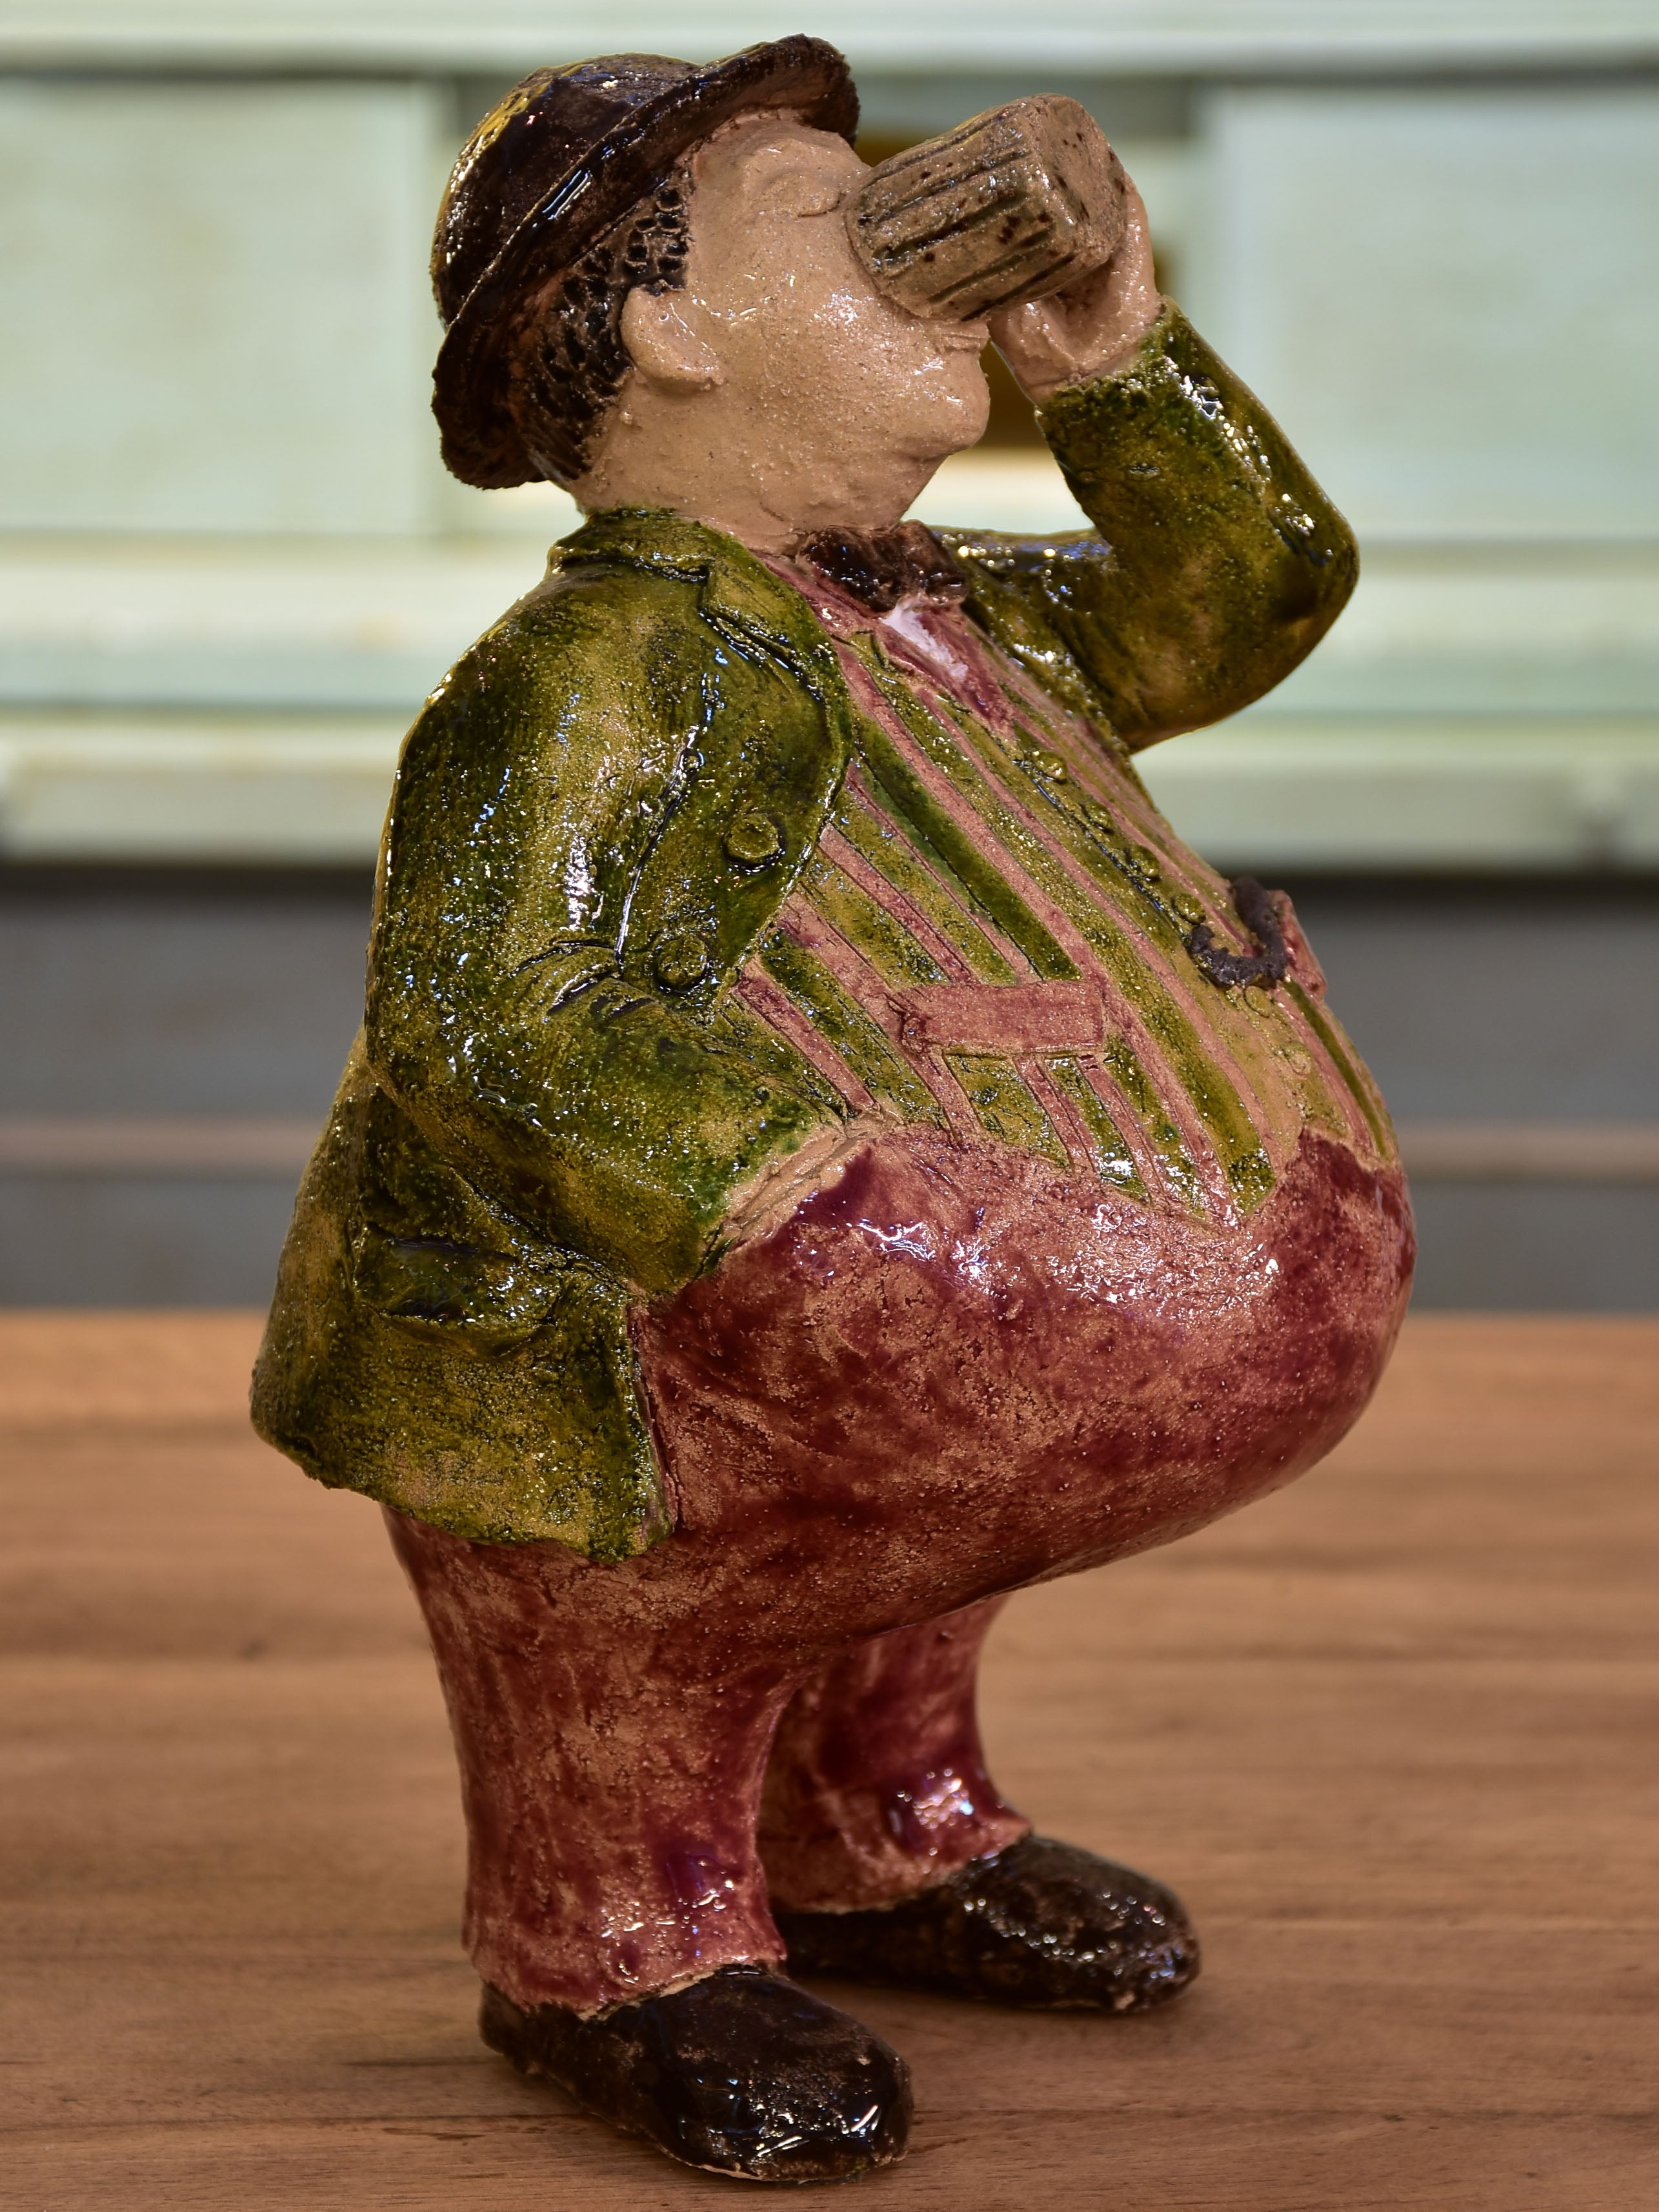 Artisan French sculpture of a man drinking beer